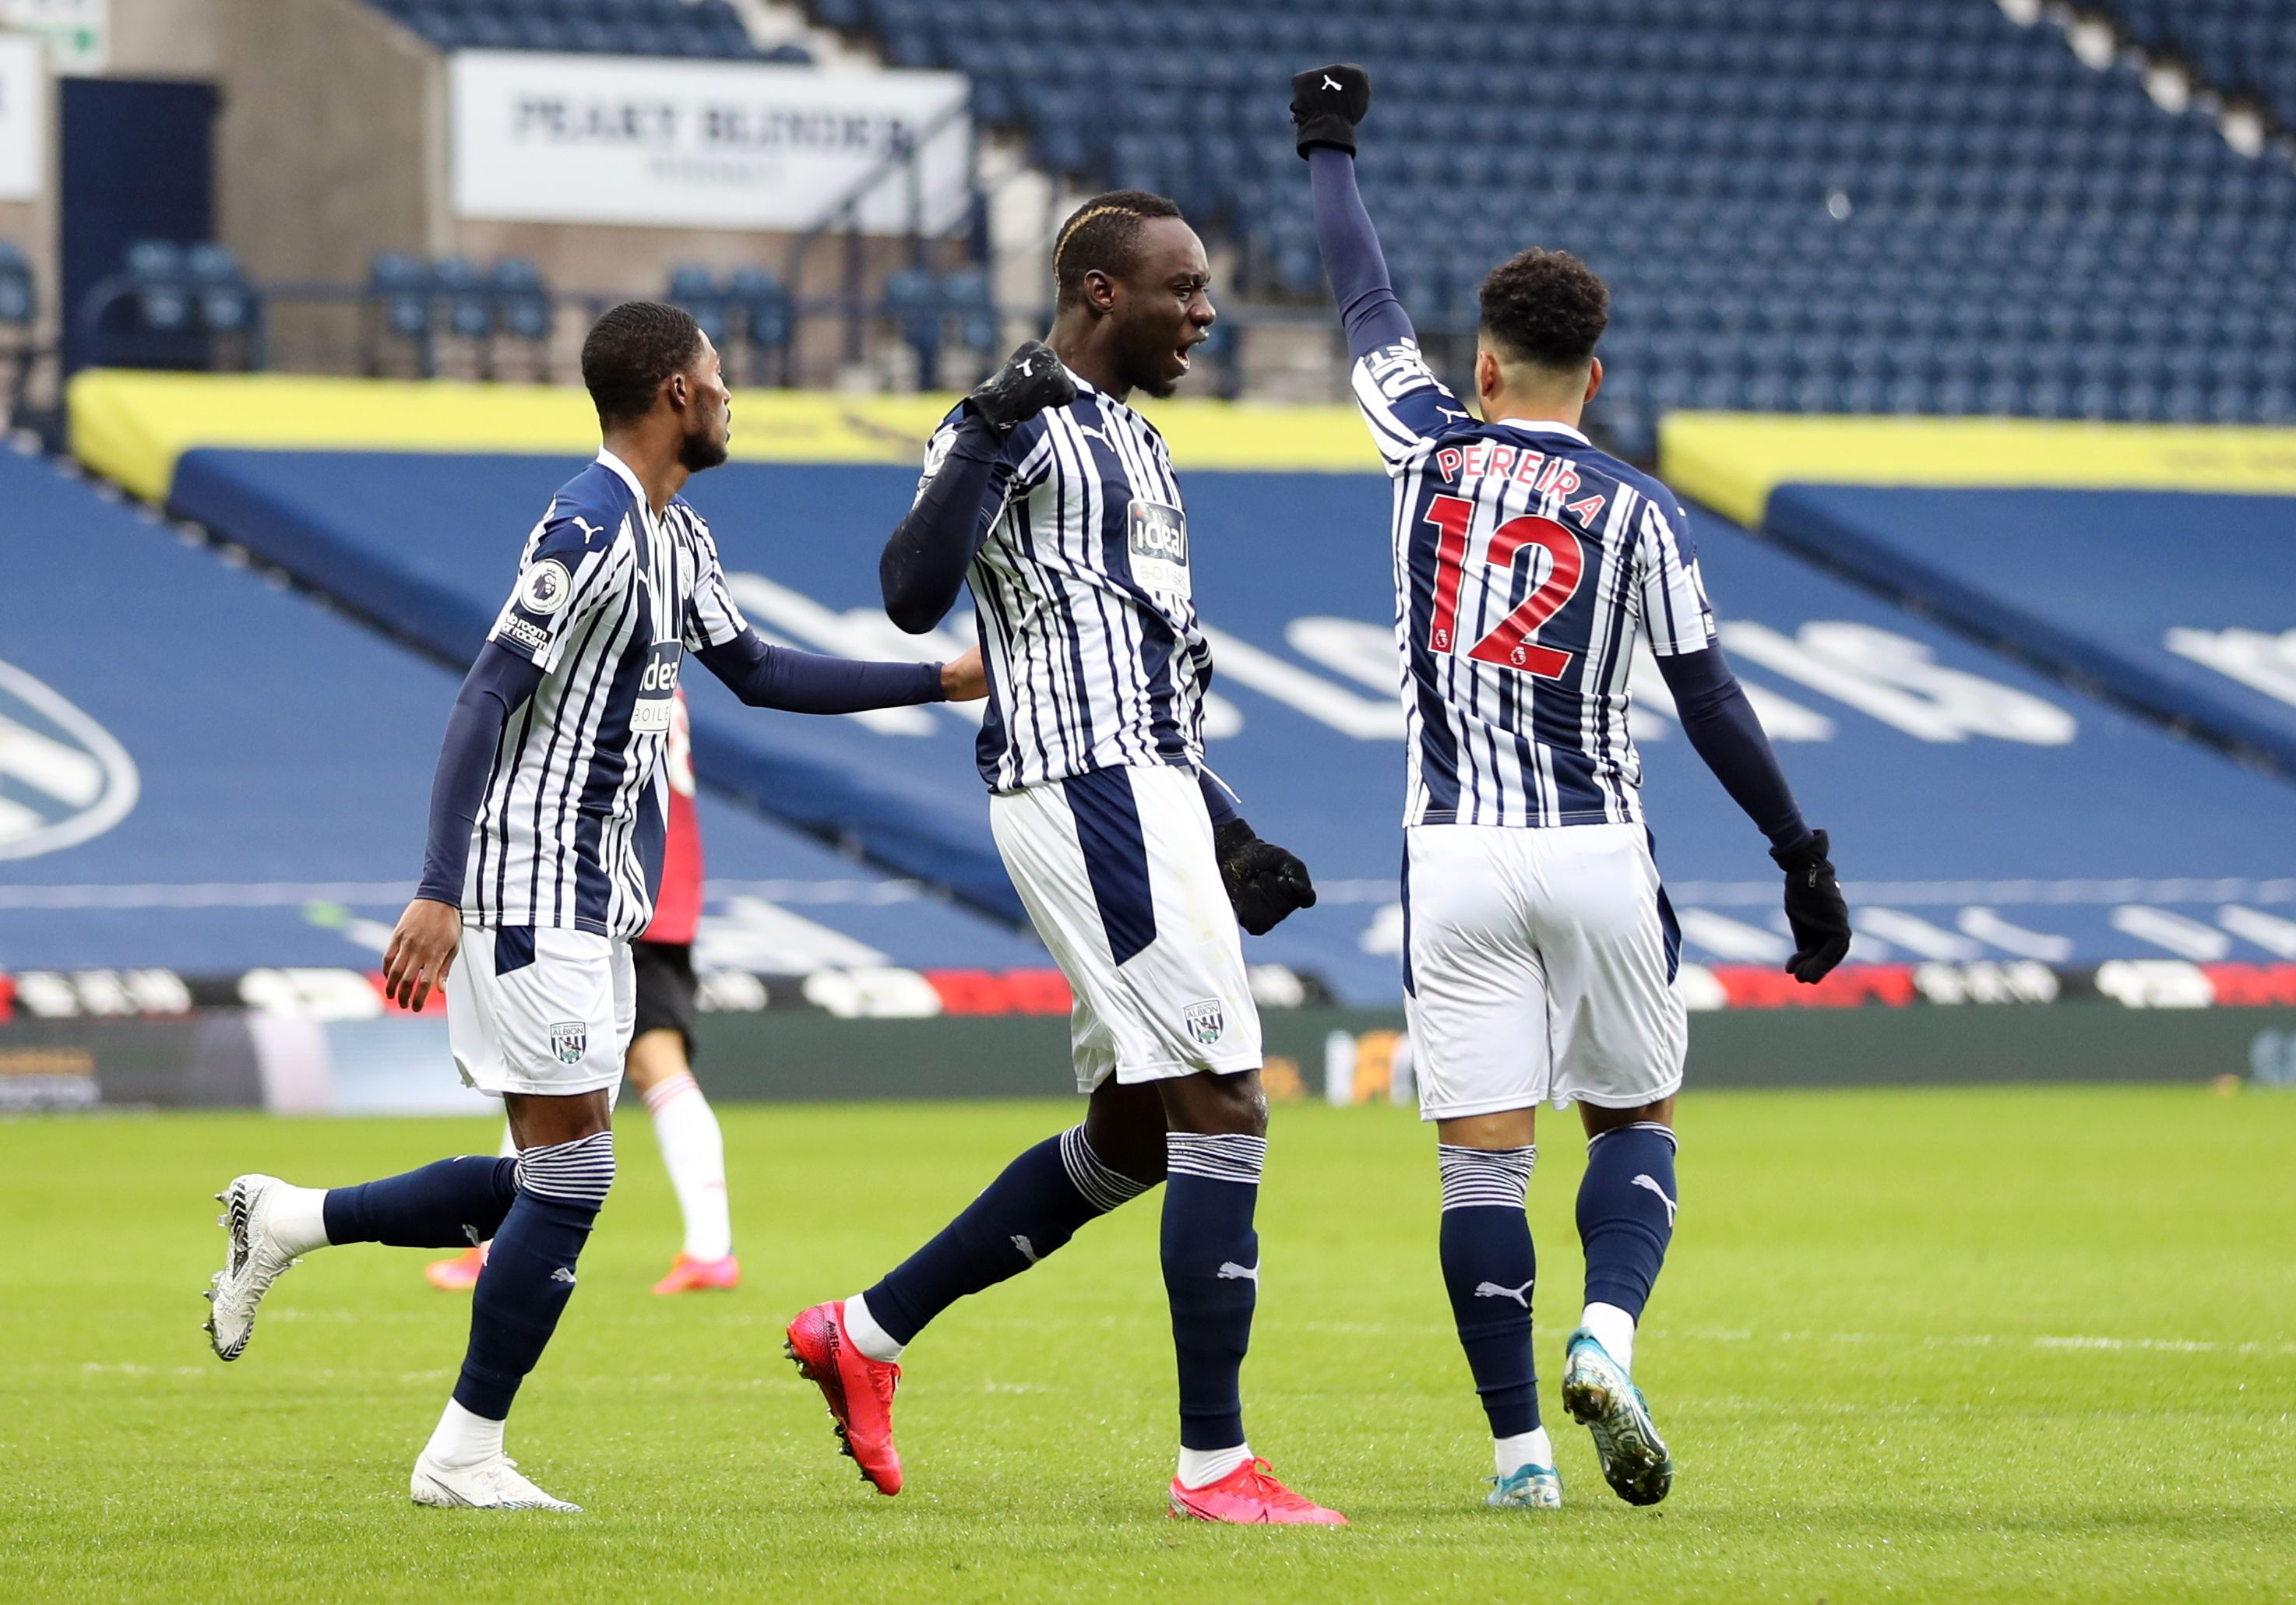 Soccer Football - Premier League - West Bromwich Albion v Manchester United - The Hawthorns, West Bromwich, Britain - February 14, 2021 West Bromwich Albion's Mbaye Diagne celebrates scoring their first goal with teammates Pool via REUTERS/Naomi Baker